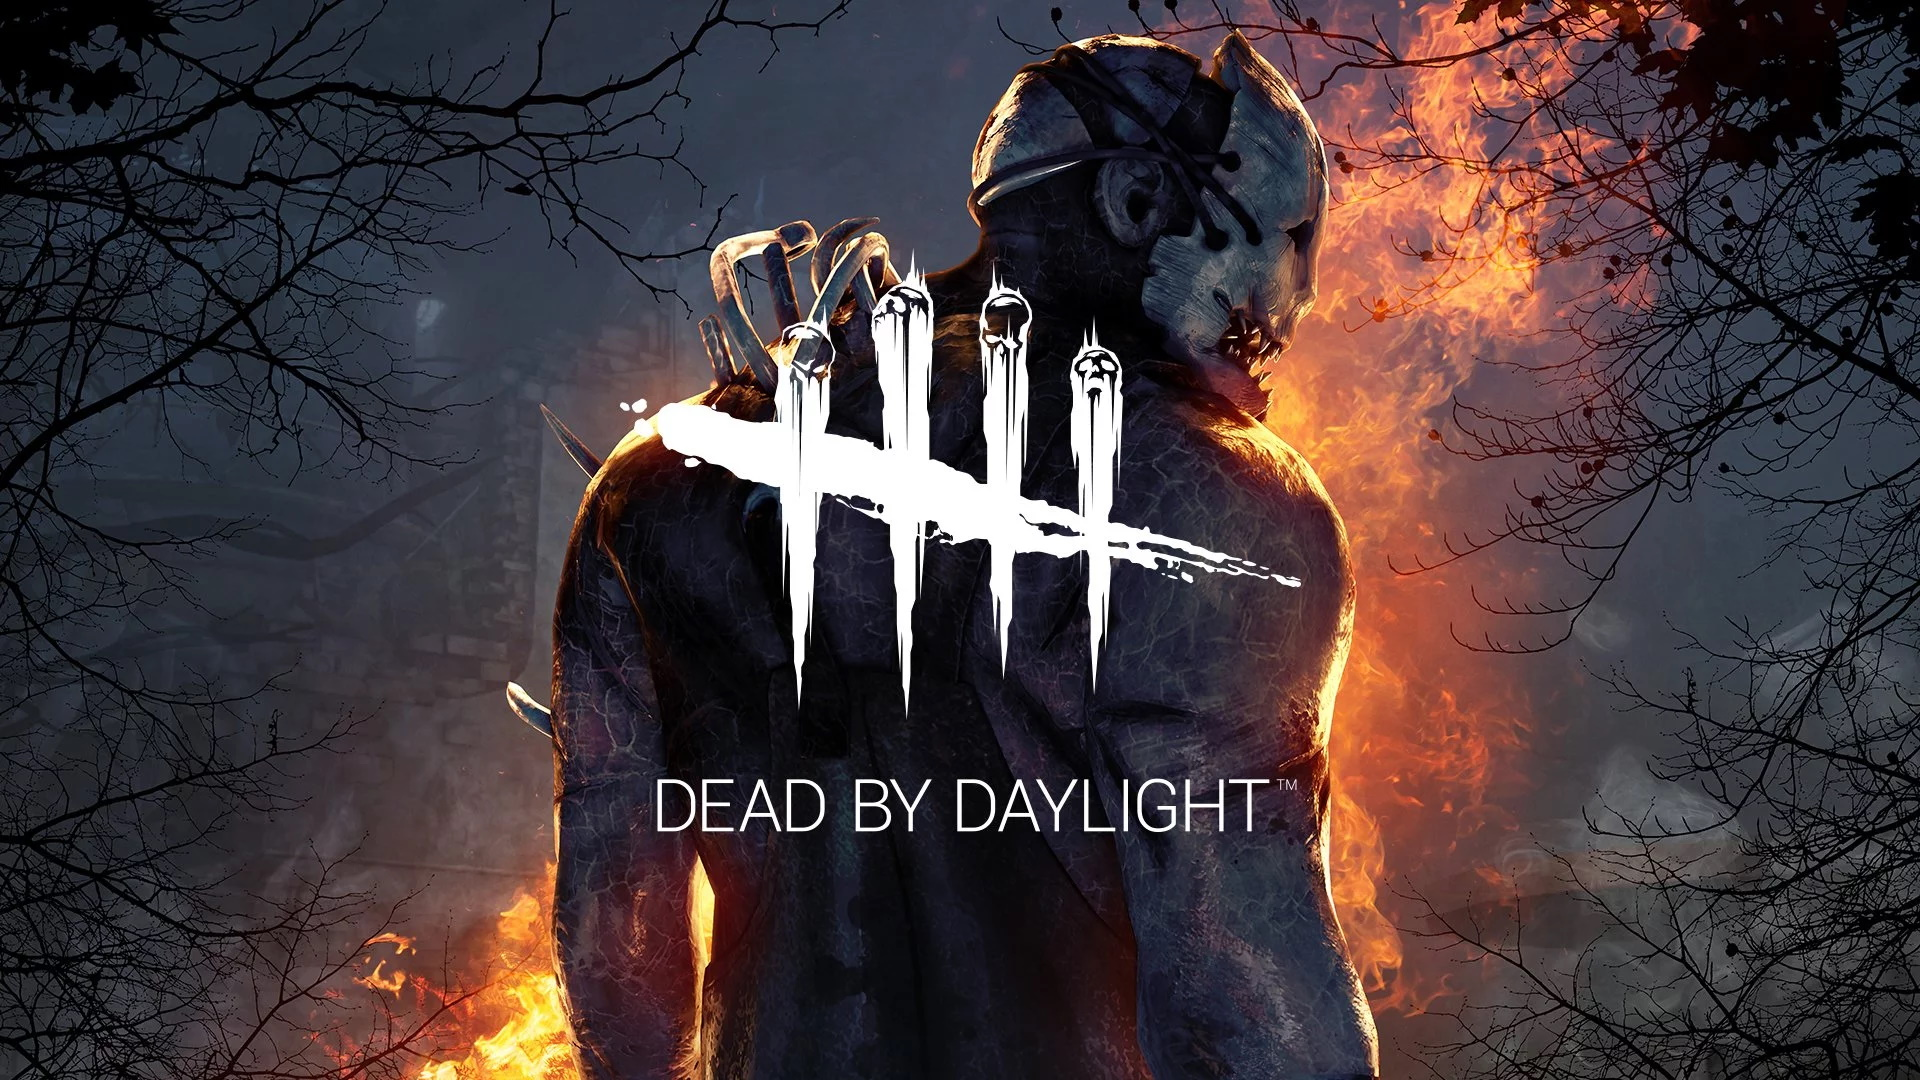 dead-by-daylight-cross-play-progression-coming-to-all-consoles.jpg